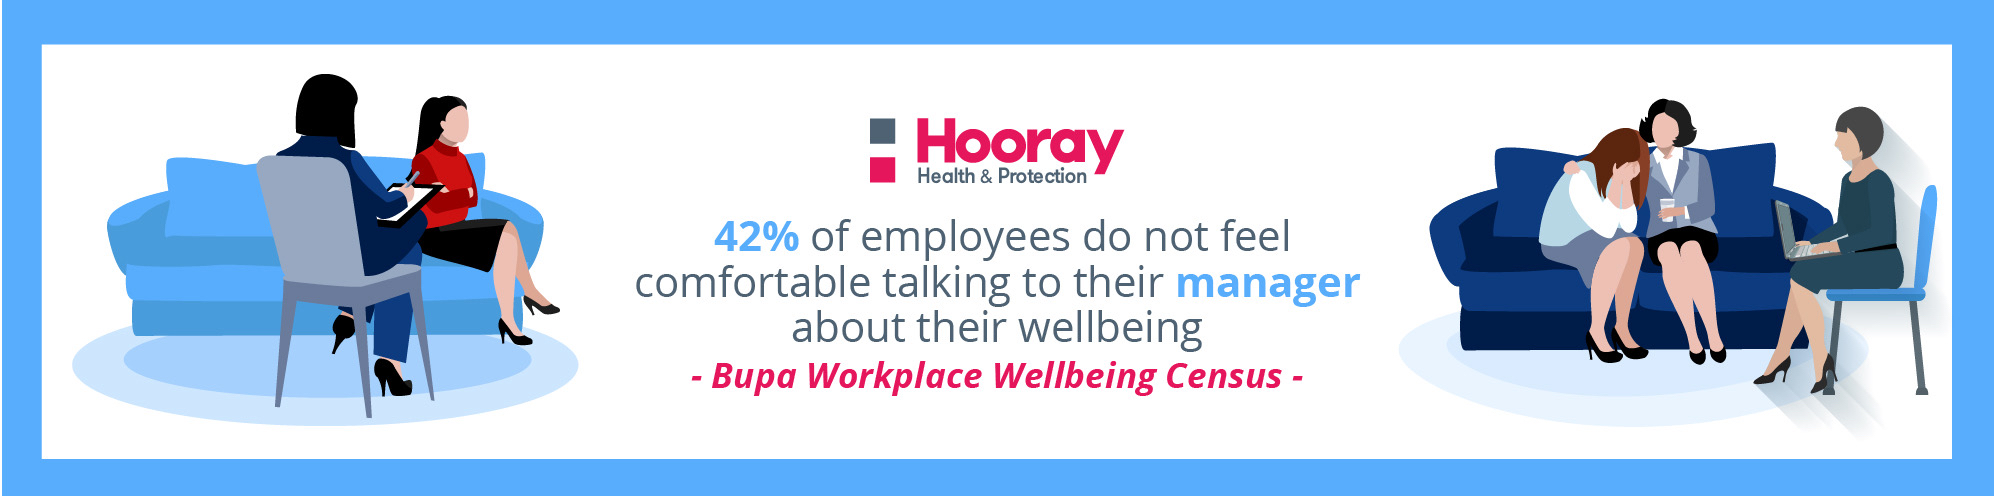 Company Health Insurance Workplace Wellbeing